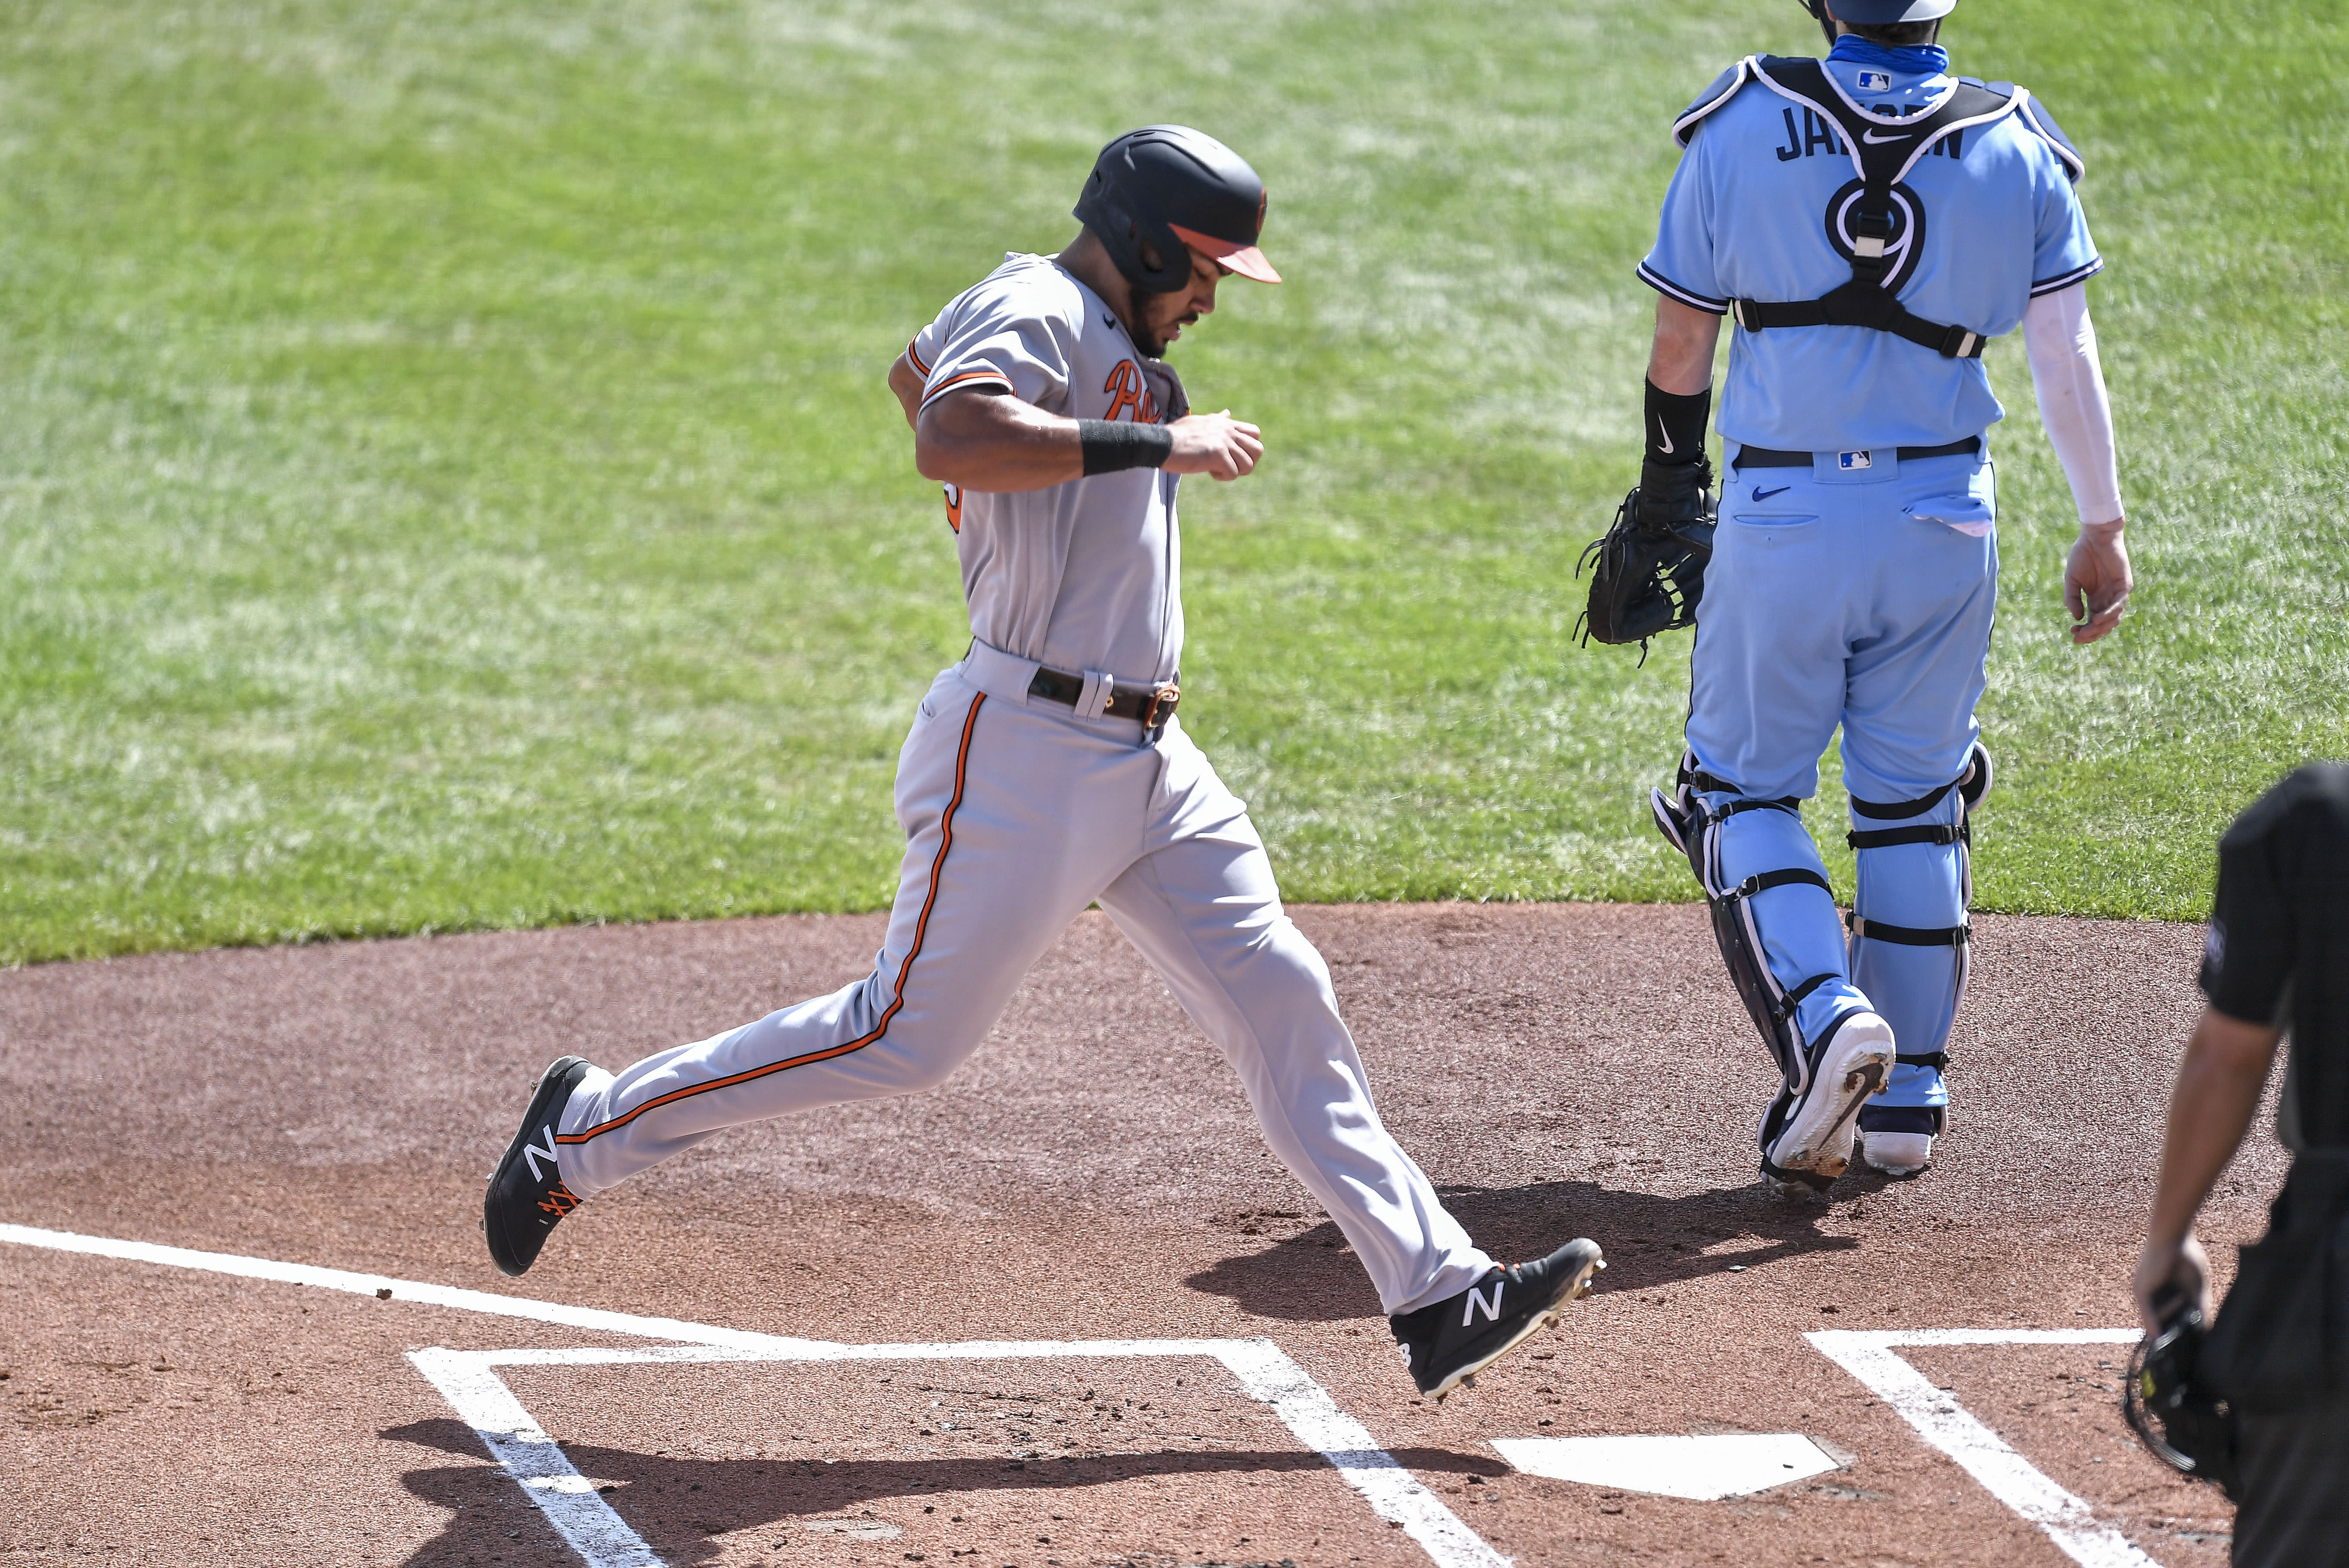 Baltimore Orioles' Anthony Santander scores against the Toronto Blue Jays on a single by José Iglesias during the first inning of a baseball game in Buffalo, N.Y., Monday, Aug. 31, 2020. (AP Photo/Adrian Kraus)